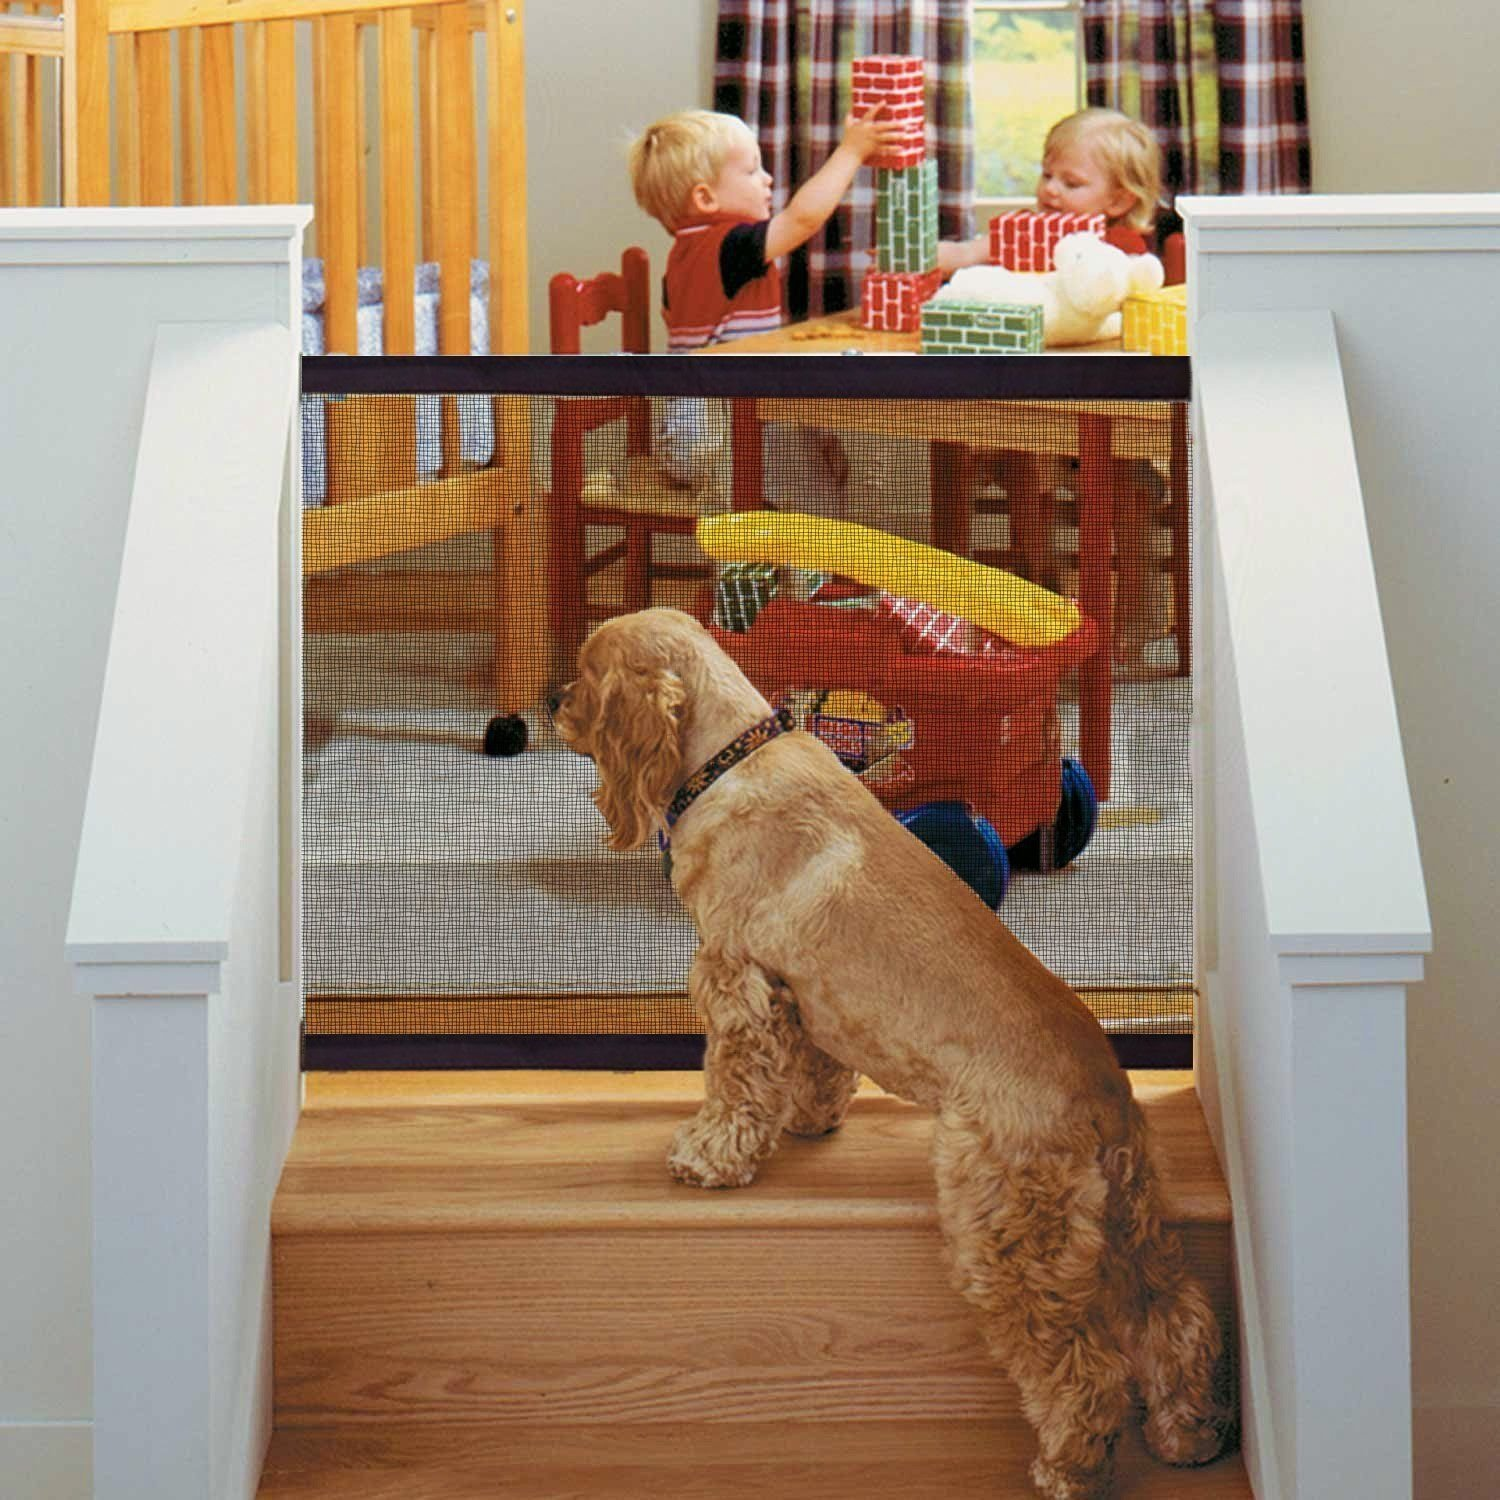 Magic Gate for Dogs - Portable Folding Mesh Screen Gate - for House Indoor Use - Dog Safe Guard Install Anywhere - As Seen On TV by Infina (Image #3)